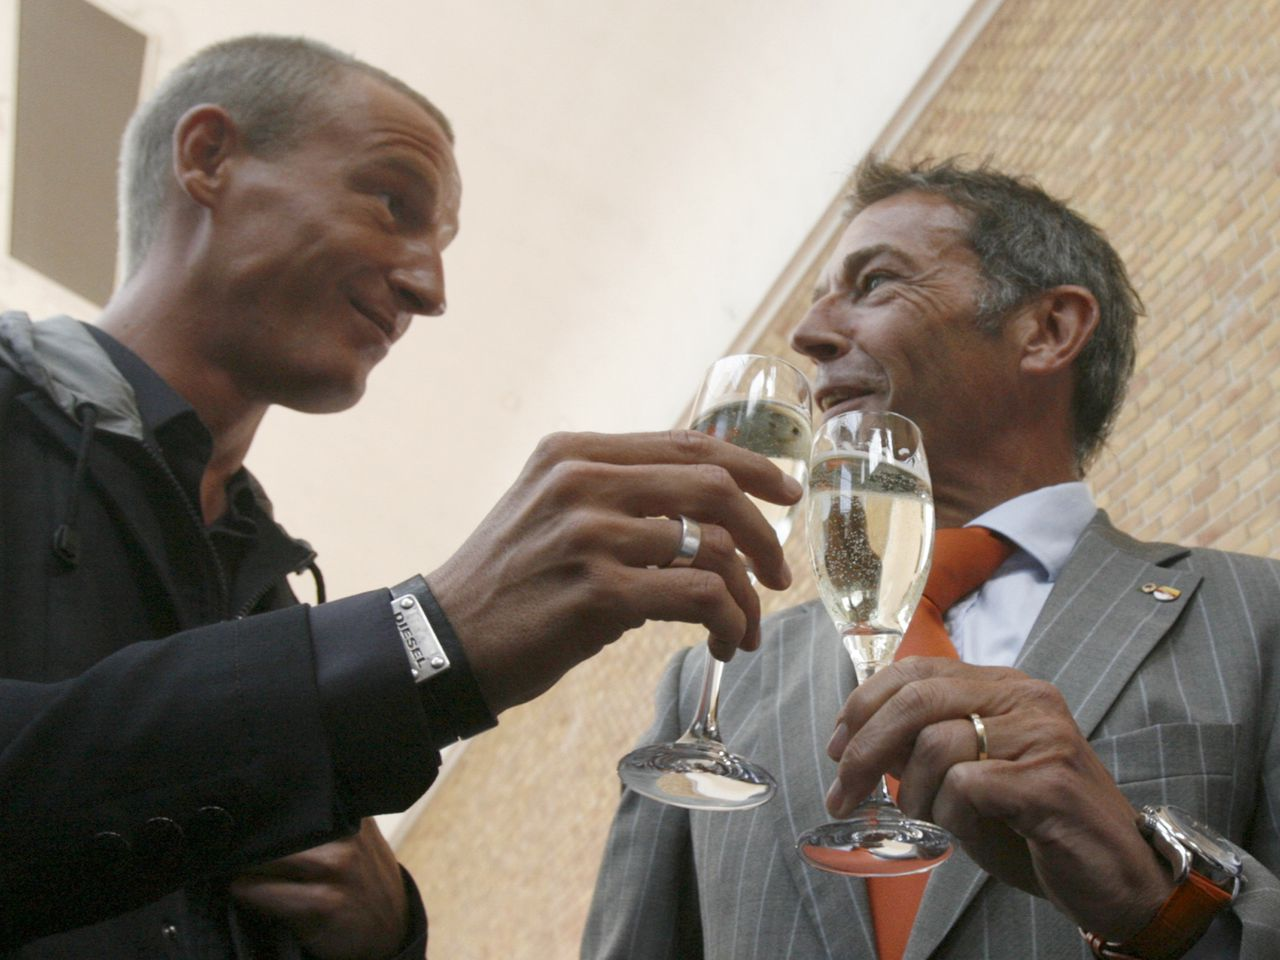 Jörg Haider en zijn woordvoerder Stefan Petzner in september Foto Reuters Leader of Buendnis Zukunft Oesterreich (BZOe) party (Alliance for Austria's future) Joerg Haider (R) and his spokesman Stefan Petzner toast after a news conference in Vienna this September 8, 2008 file photo. Prominent Austrian far-right politician Haider was over the legal drinking limit when he died in a high-speed crash in his car at the weekend, a party official said october 15, 2008. Haider, 58, was killed in the early hours of Saturday when the car he was driving at 142 kmh (88 mph), around twice the speed limit, crashed off a road in the southern province of Carinthia, where he served as governor. REUTERS/Heinz-Peter Bader/Files (AUSTRIA)